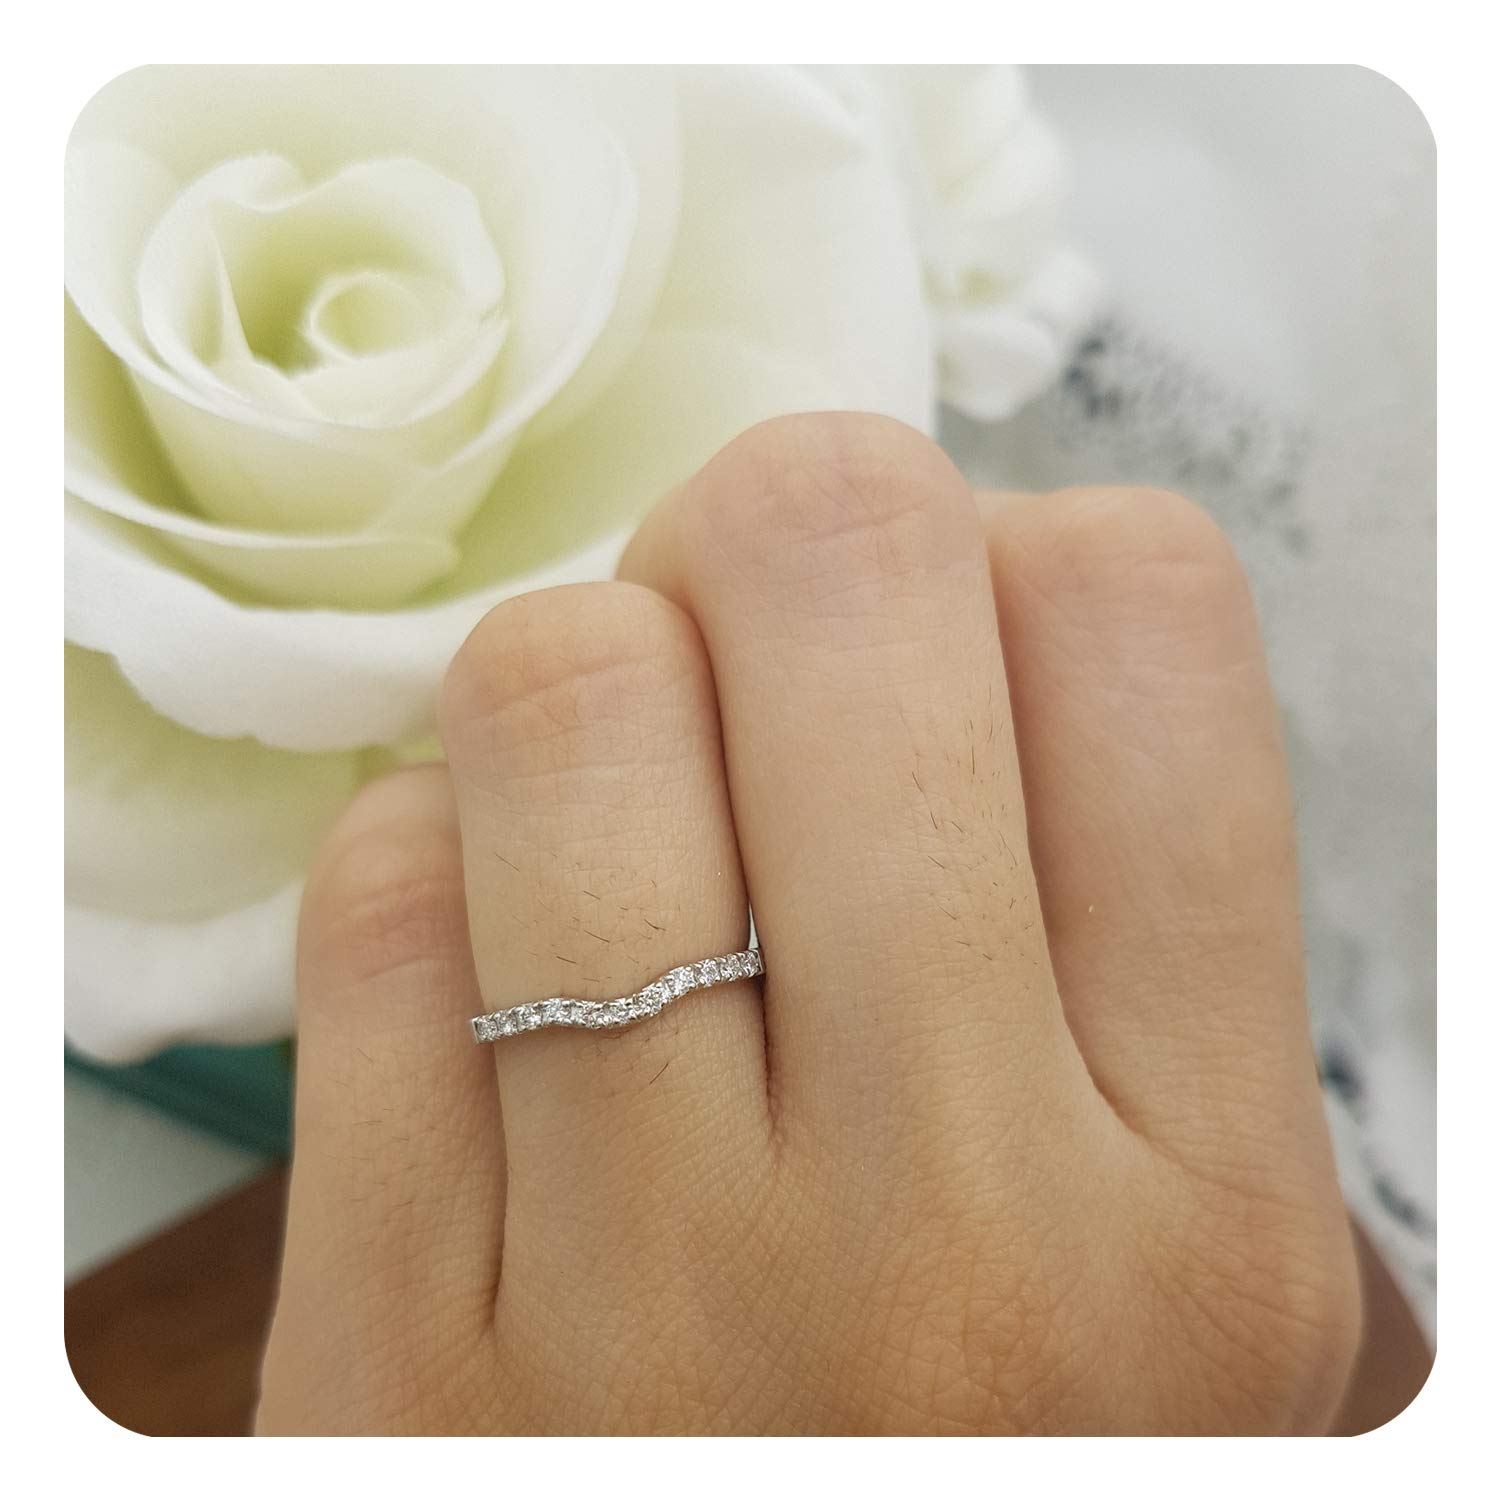 dazzlingjewelrycollection 0.15 Carat Ctw 14K White Gold Over Sterling Silver Round Shaped Diamond Ladies Anniversary Wedding Stackable Contour Guard Band